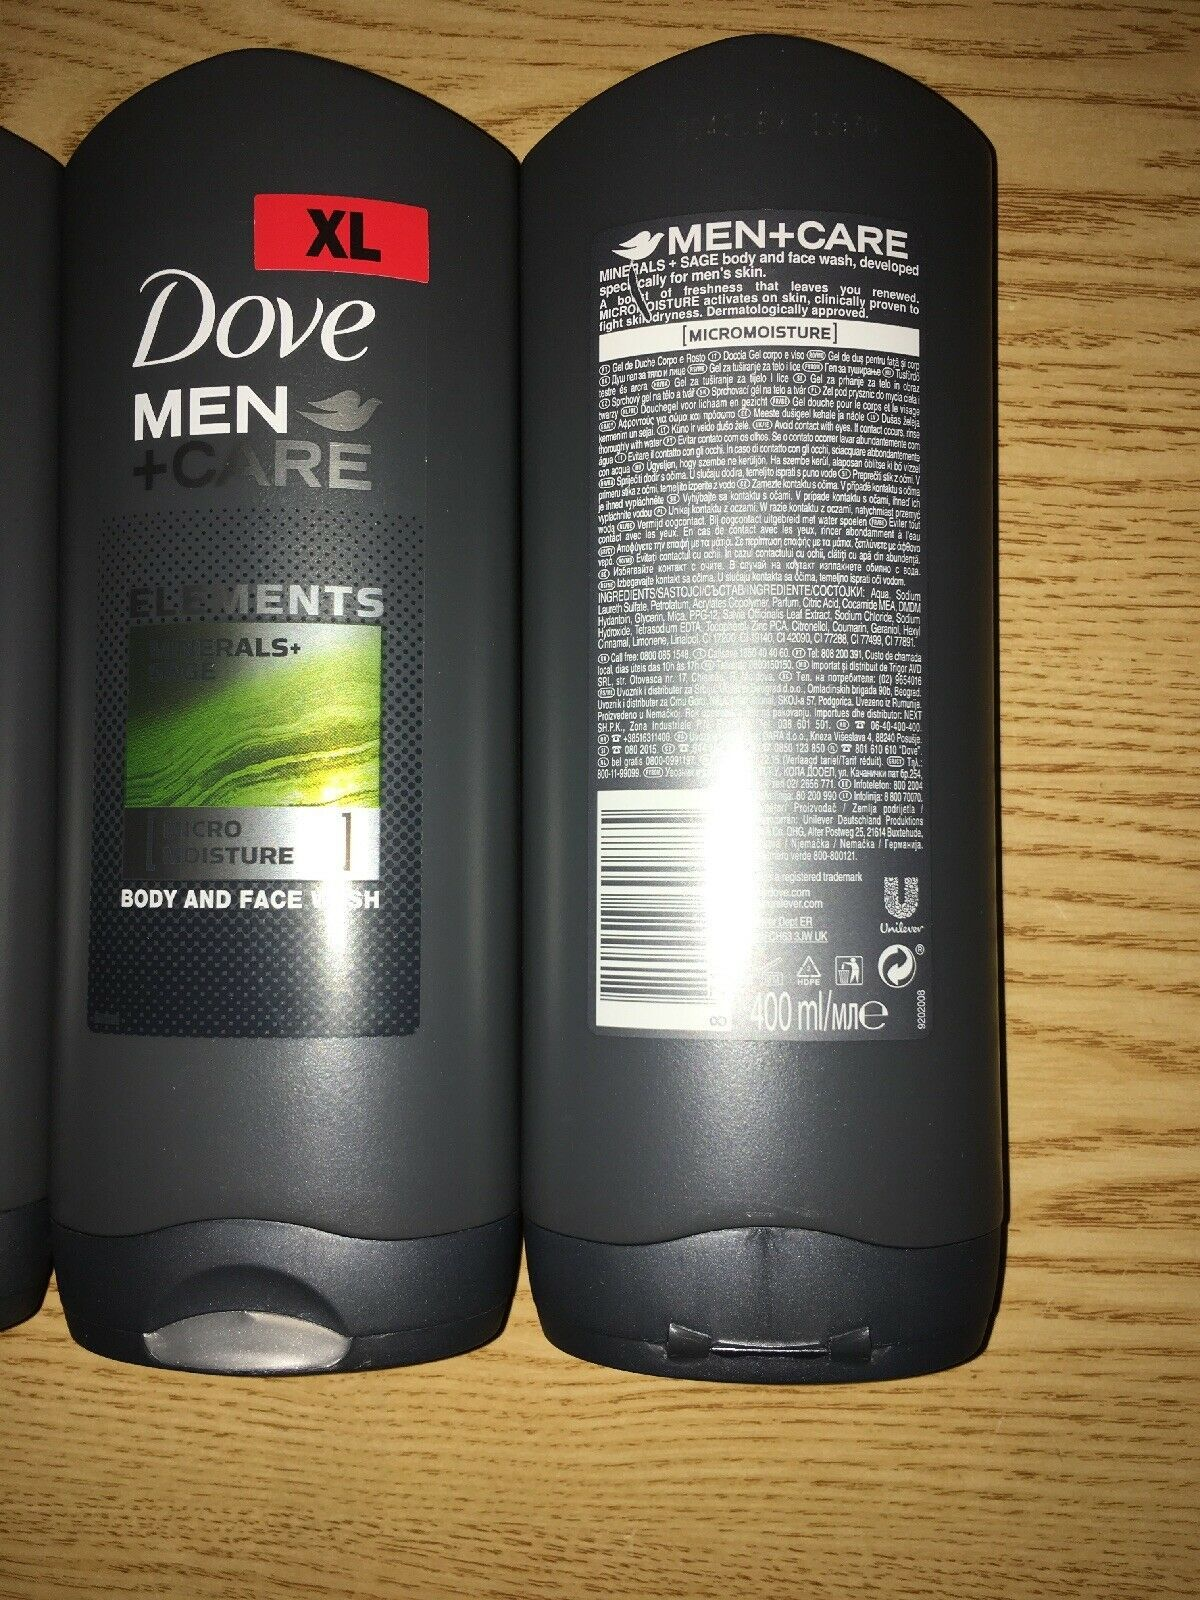 New Lot Of 3 Dove Men Care Body Face And 33 Similar Items